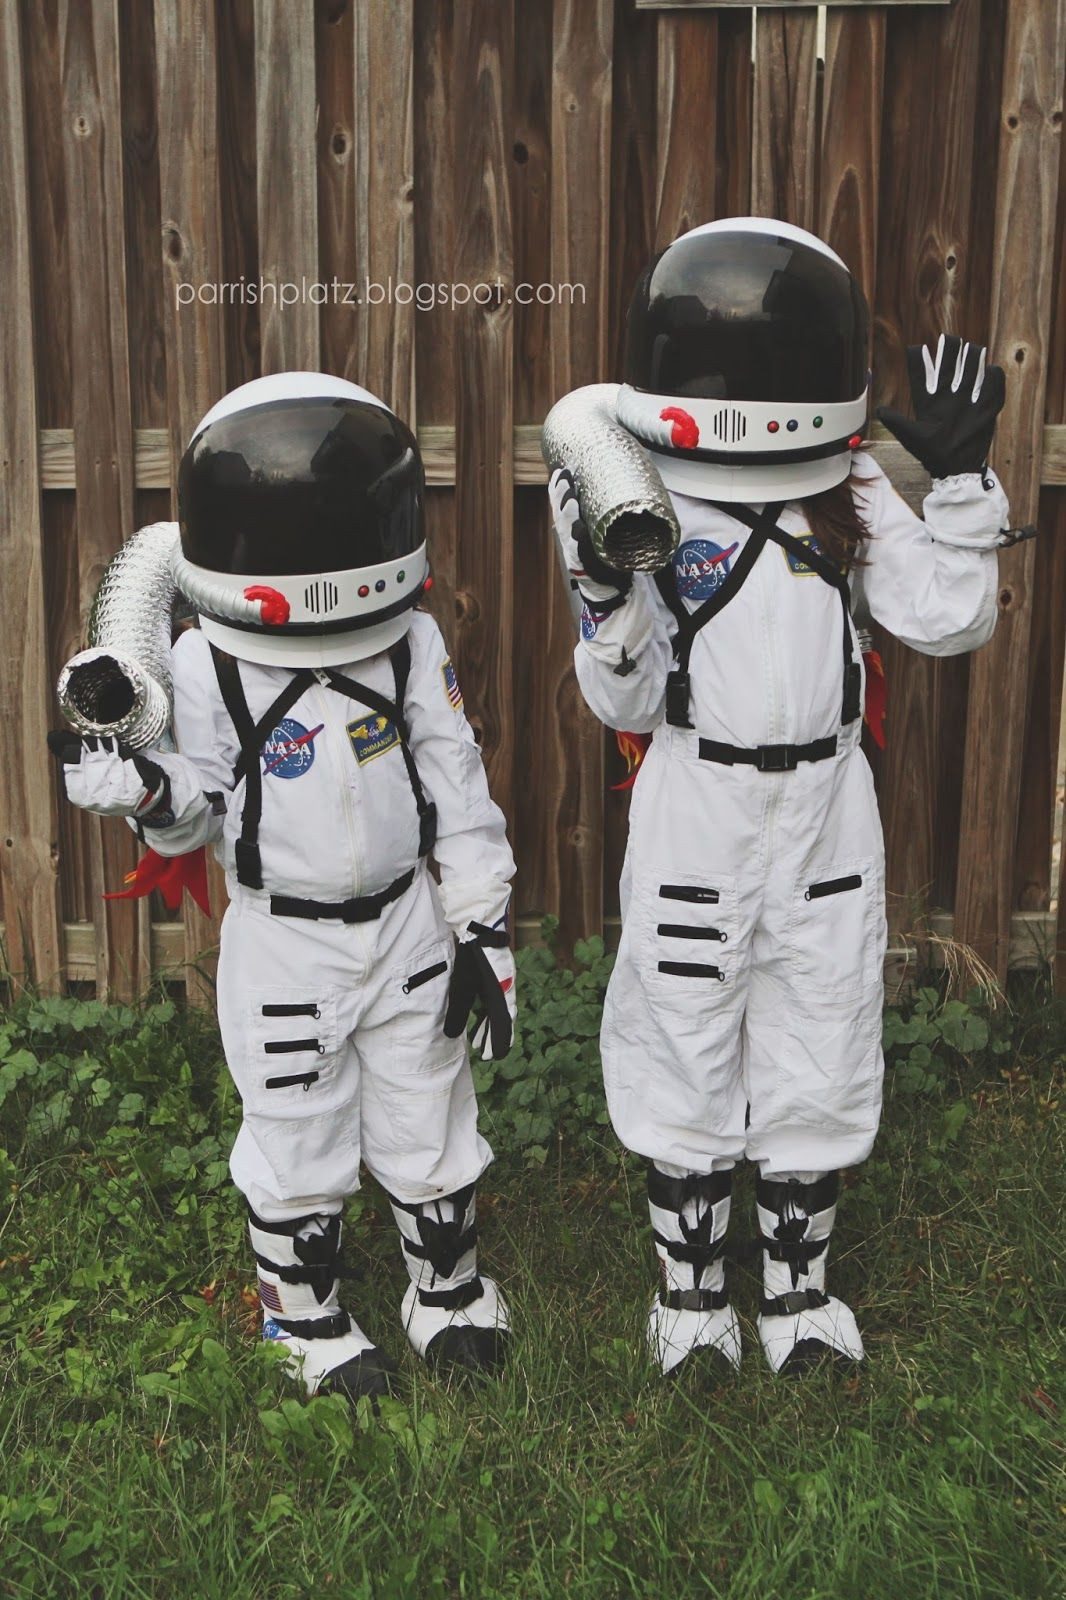 DIY Kids Astronaut Costume  astronaut costumes with candy collecting jetpacks